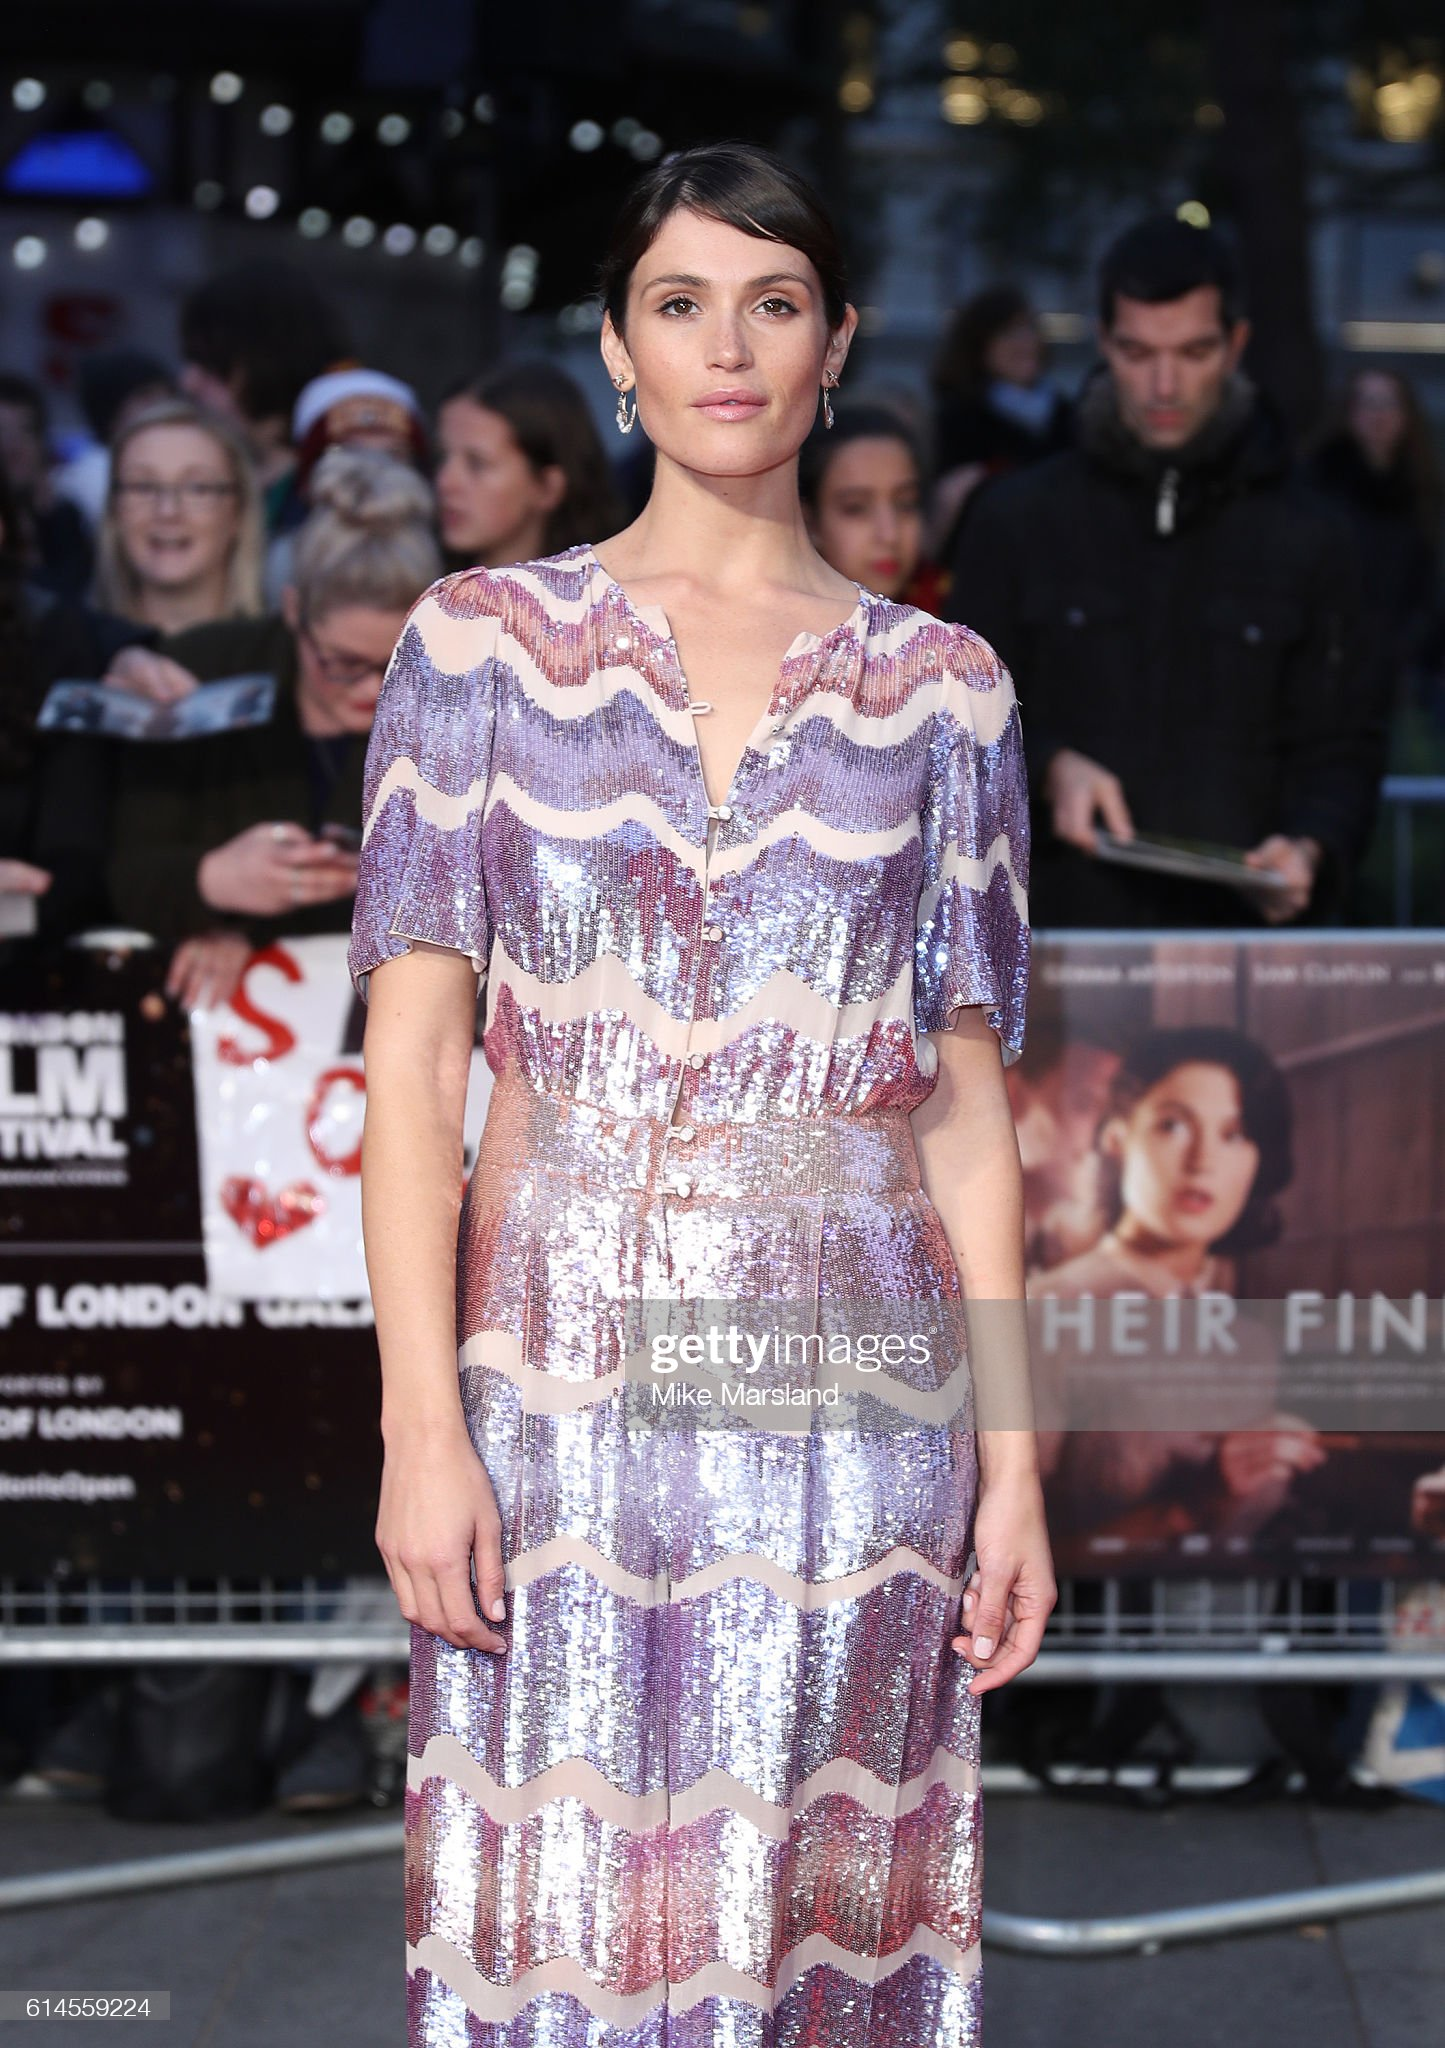 gemma-arterton-attends-their-finest-mayors-centrepiece-gala-screening-picture-id614559224